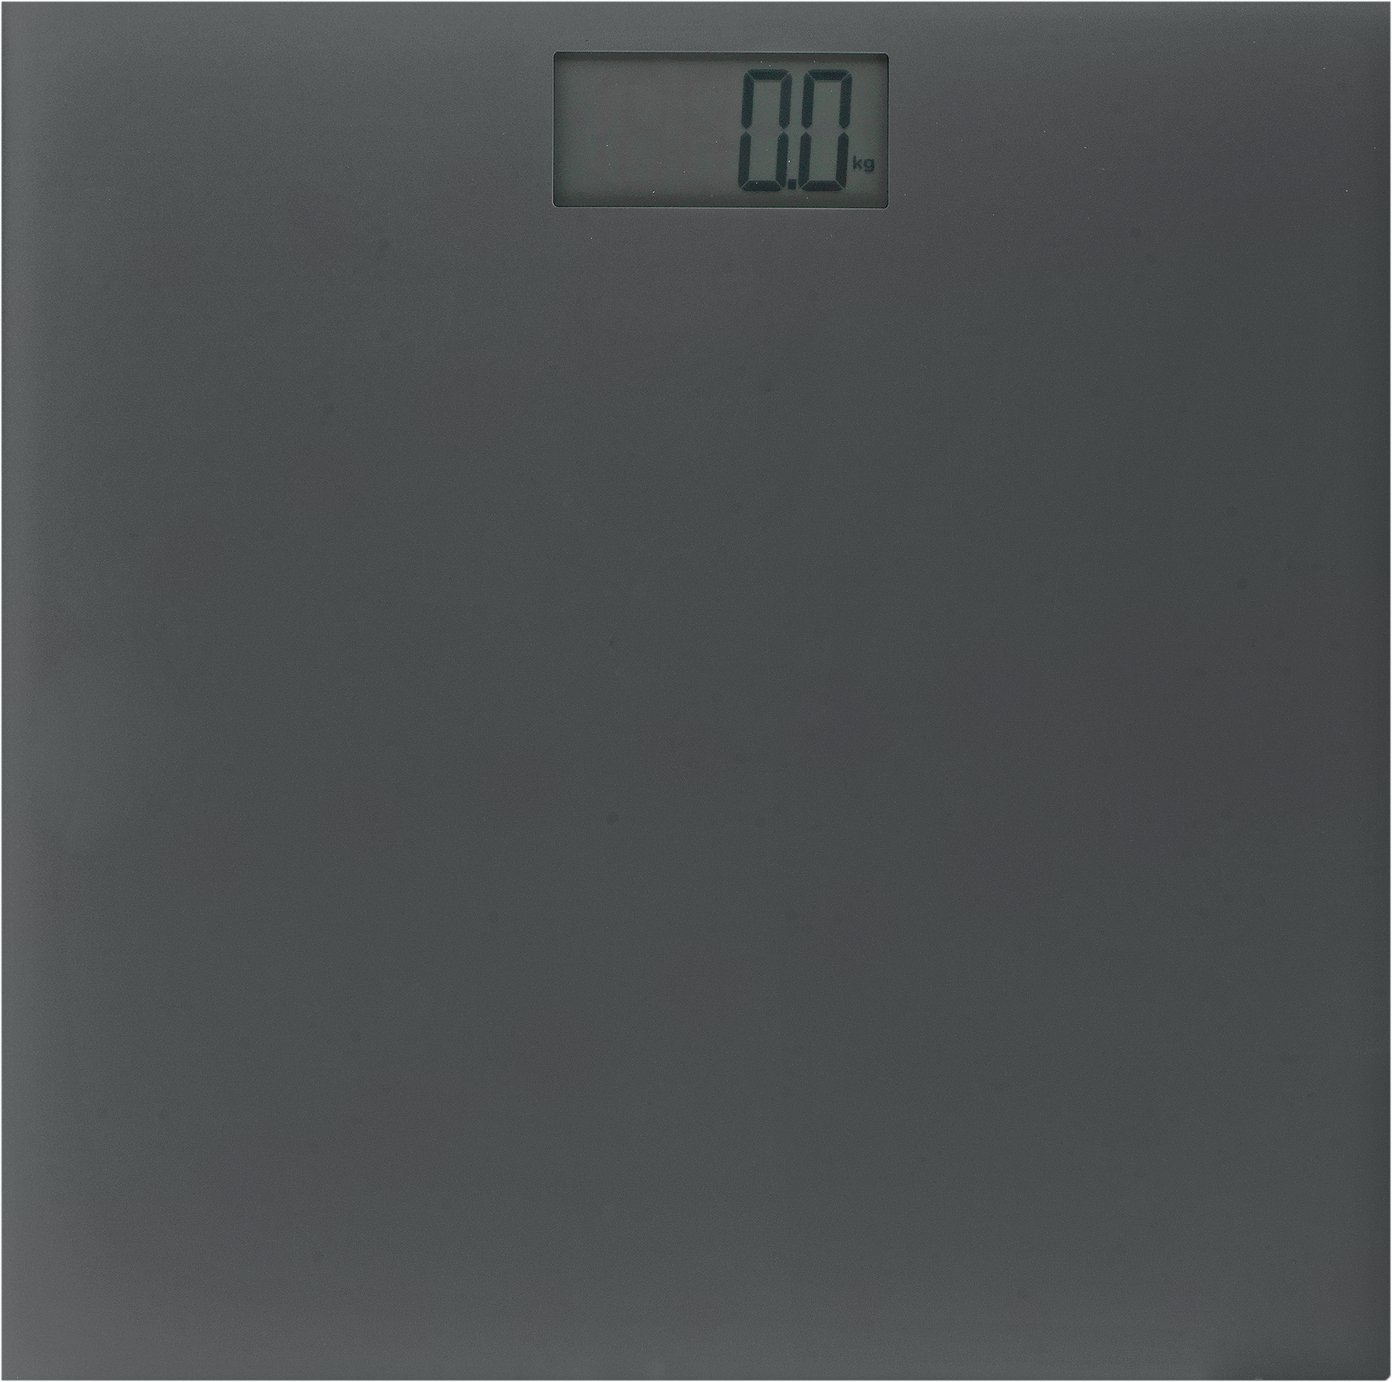 Image of ColourMatch Electronic Scales - Jet Black